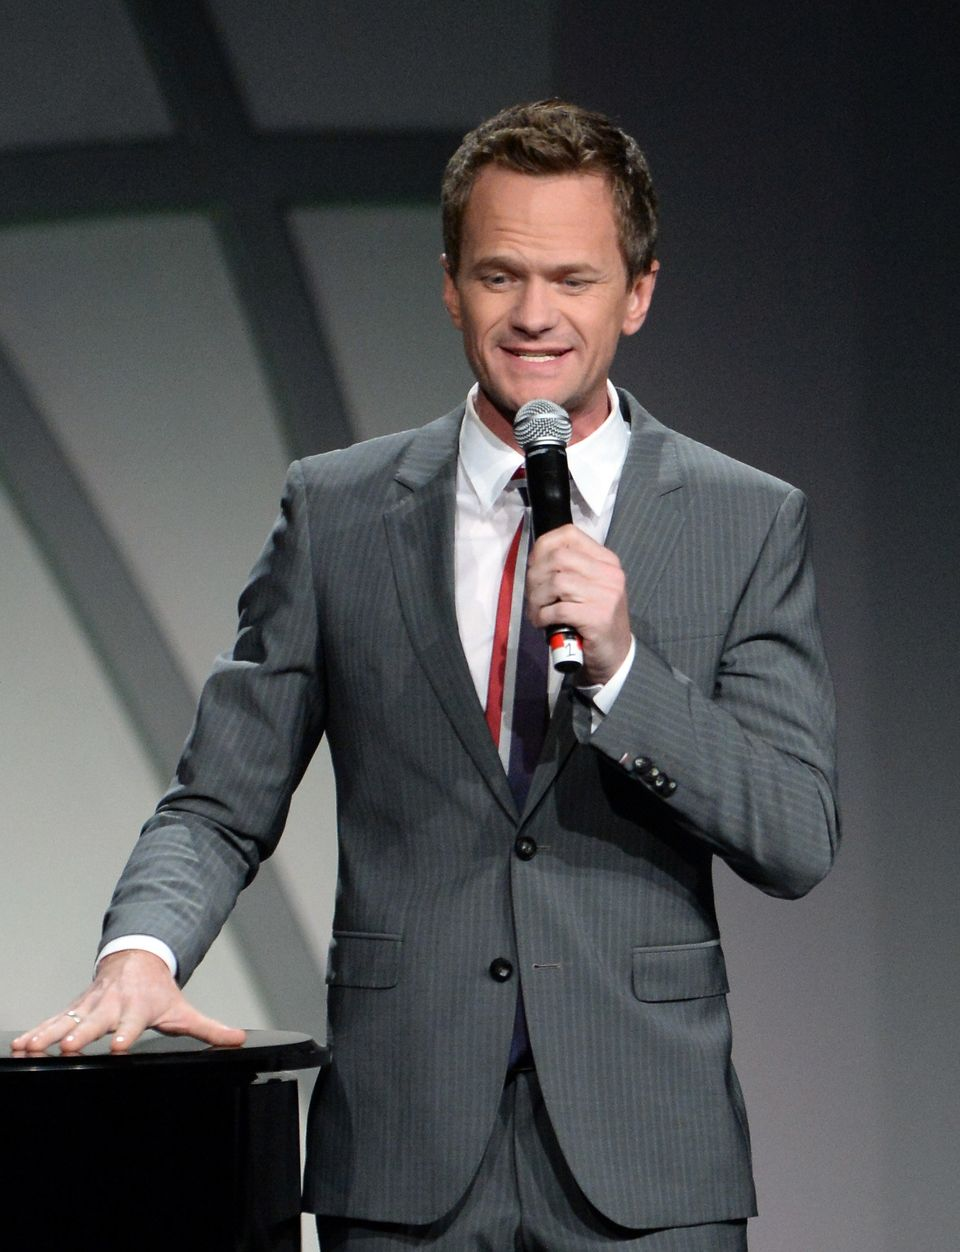 CENTURY CITY, CA - MAY 03: Actor Neil Patrick Harris attends the 20th Annual Race To Erase MS Gala 'Love To Erase MS' at the